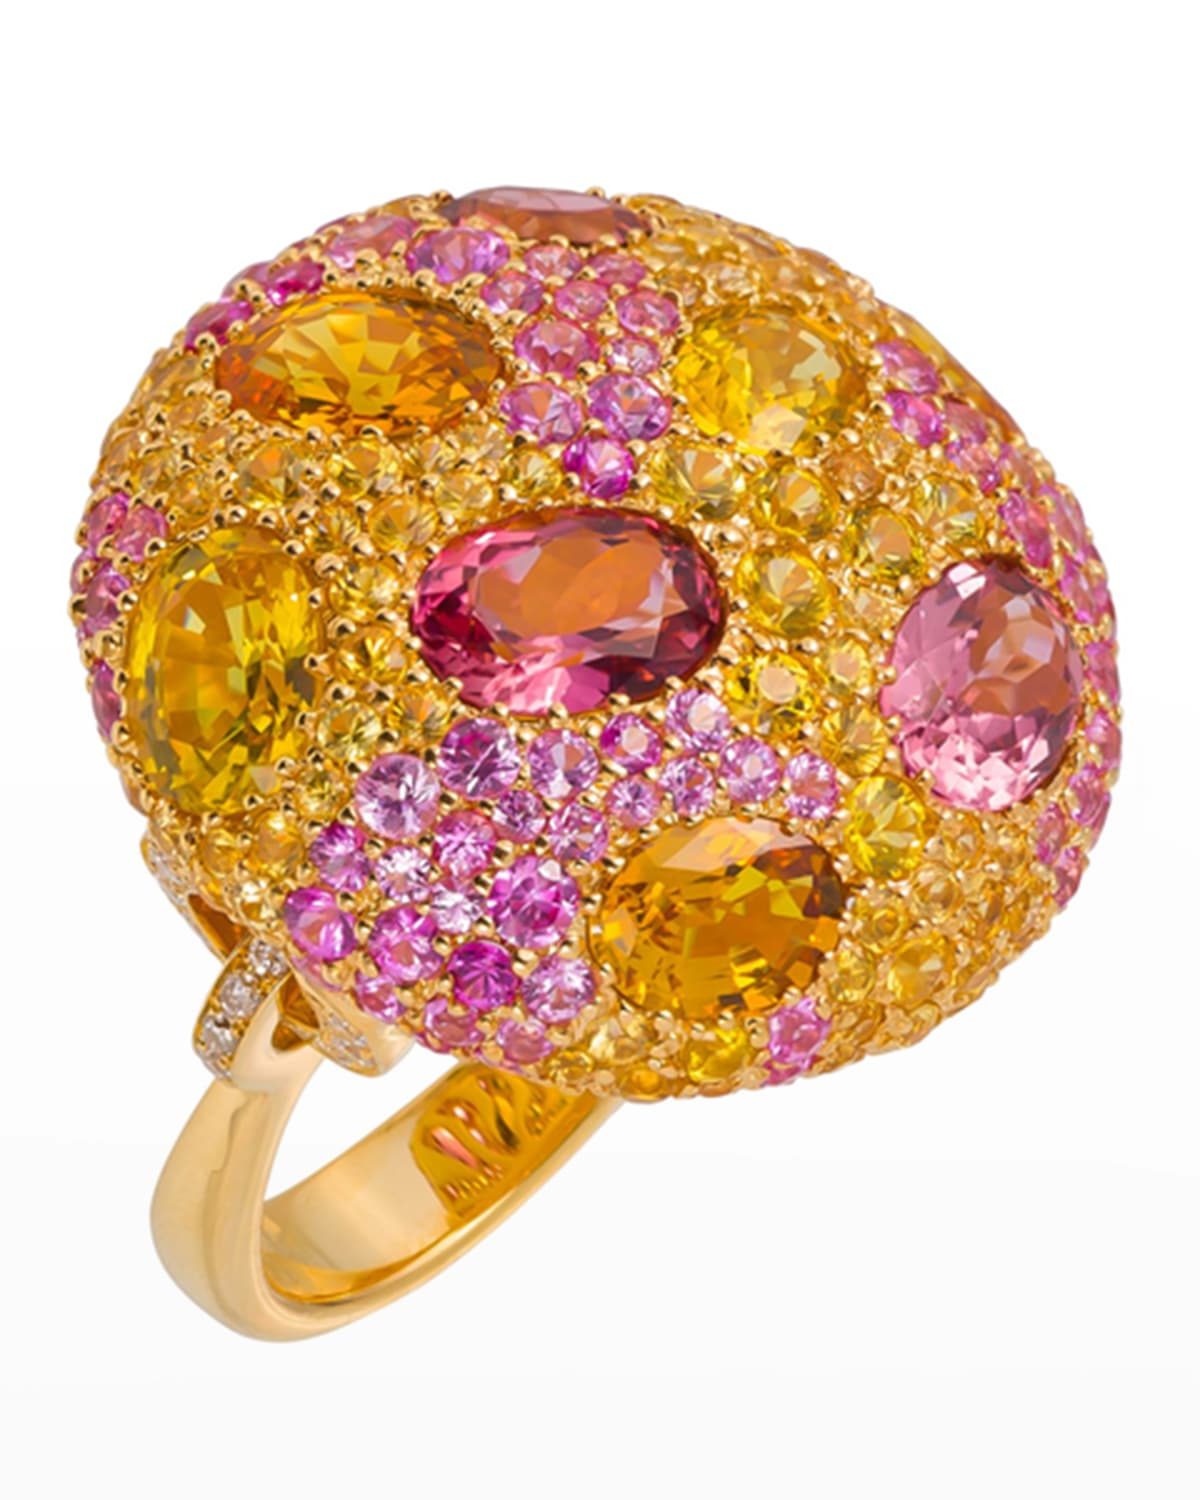 18k Gold & Stone Cookie Ring, Size 6.5